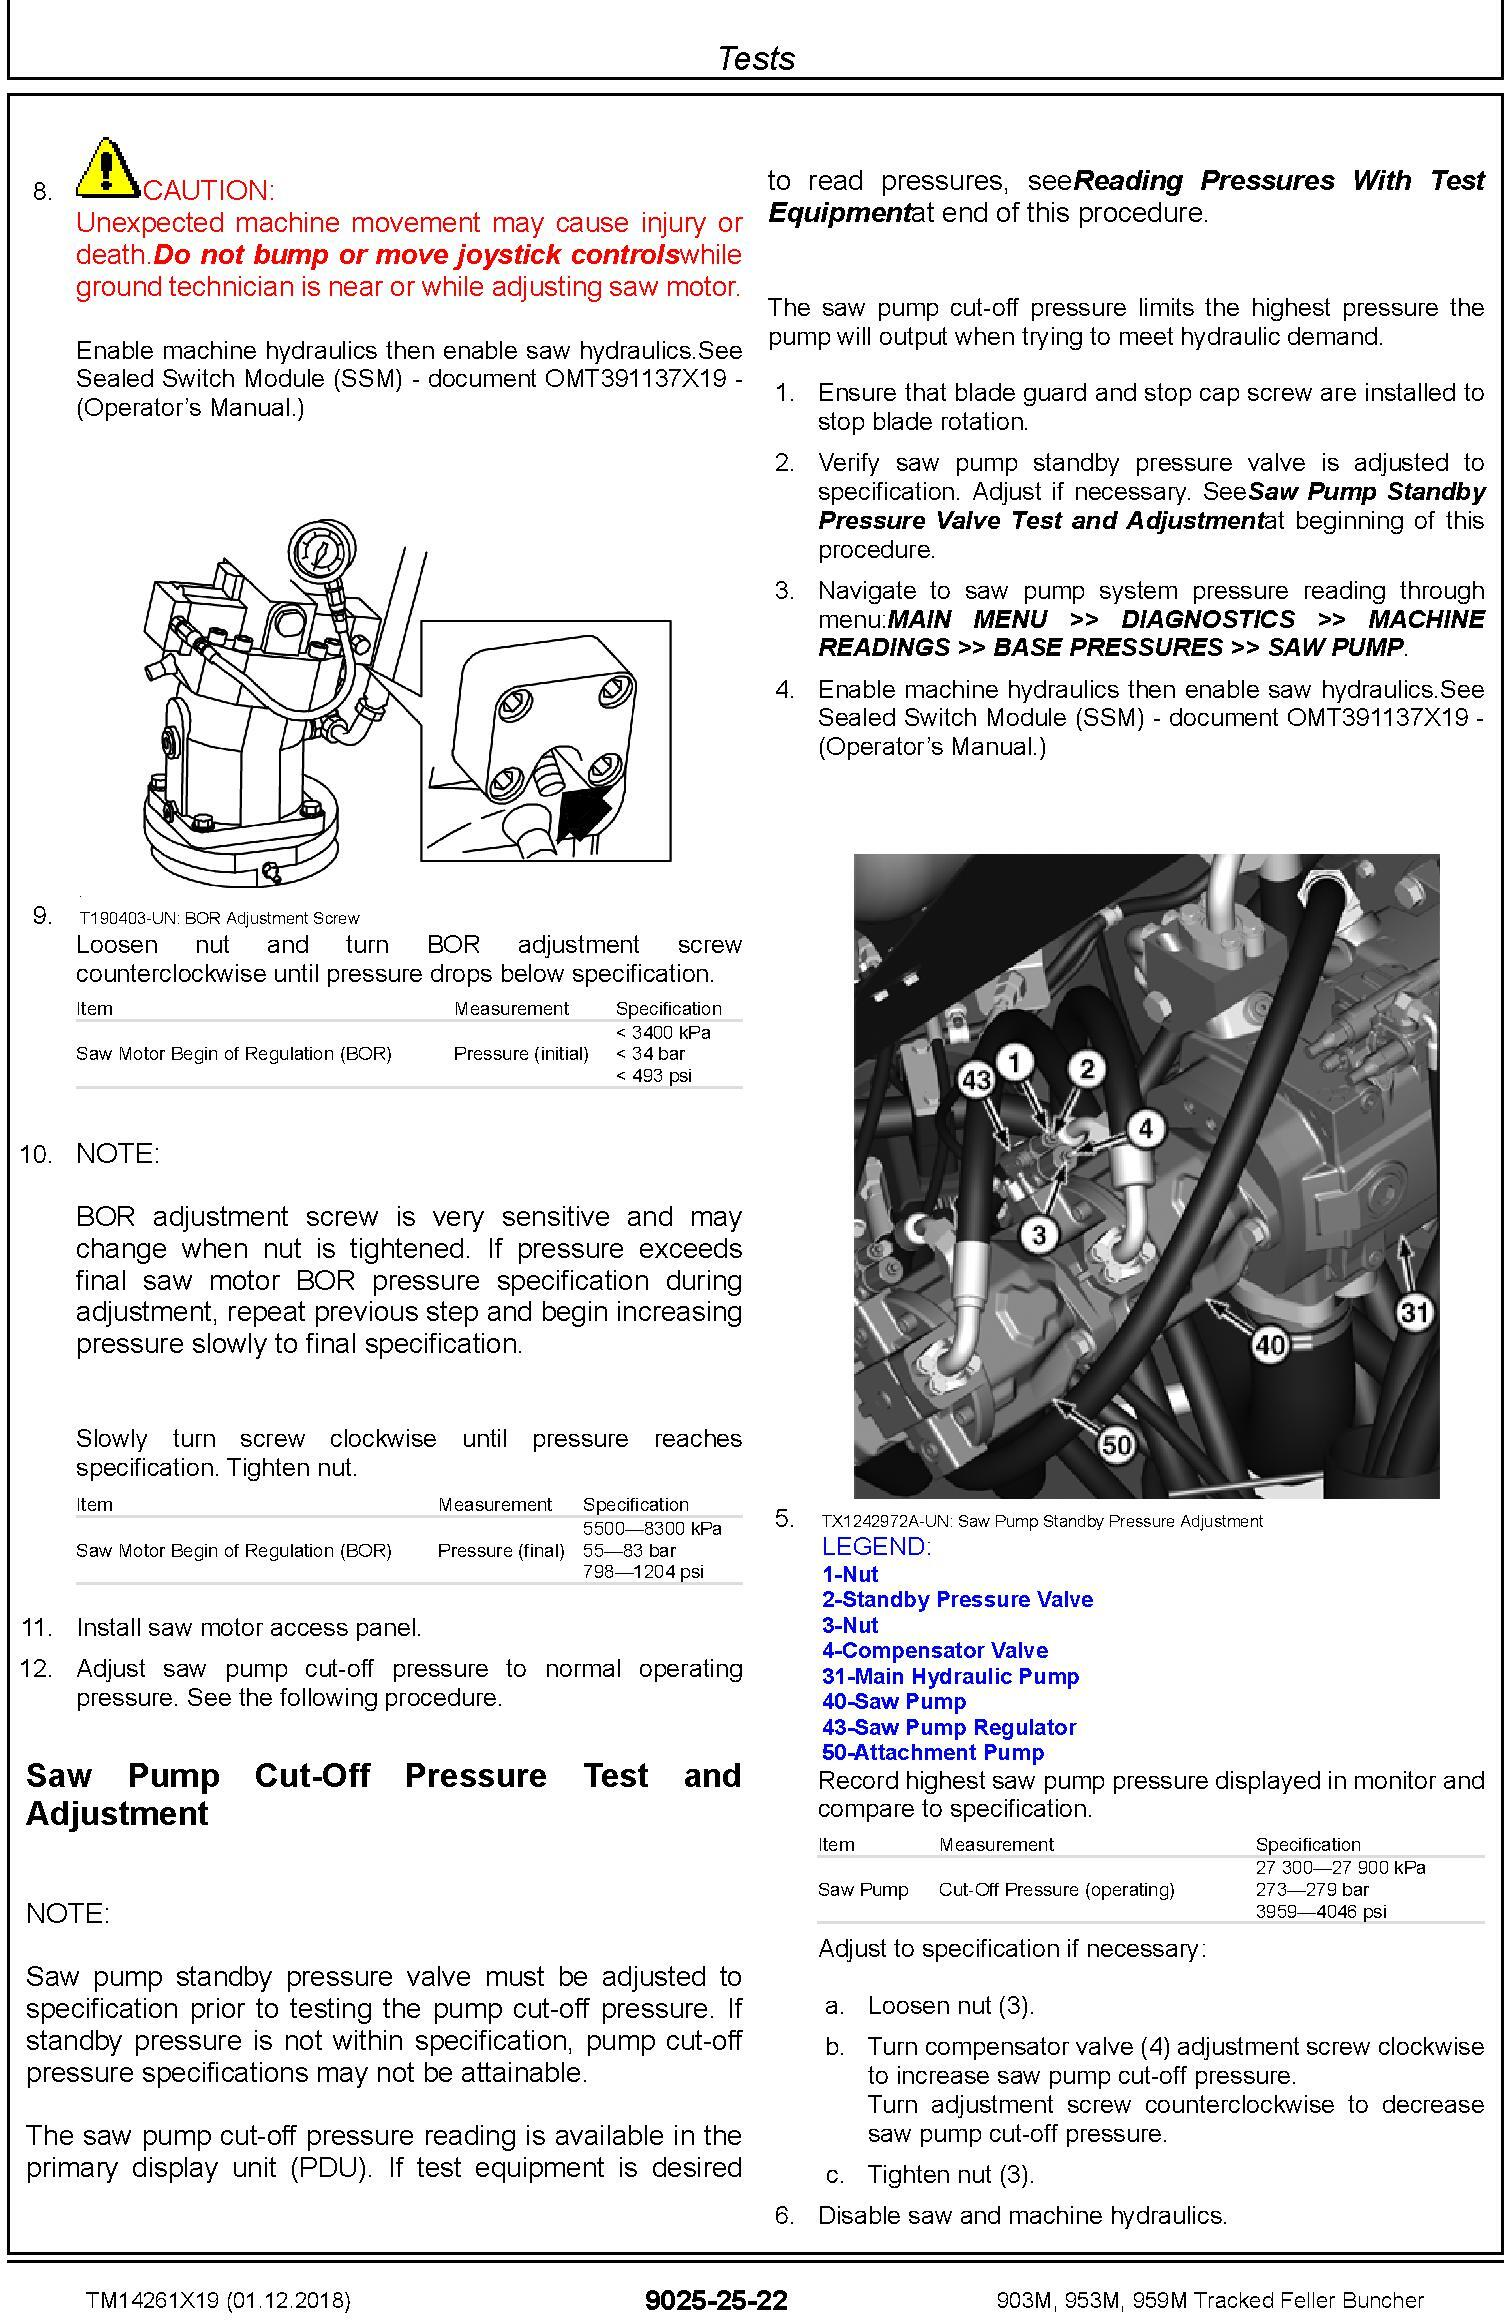 John Deere 903M, 953M, 959M (SN. F317982-, L317982-) Feller Buncher Diagnostic Manual (TM14261X19) - 3